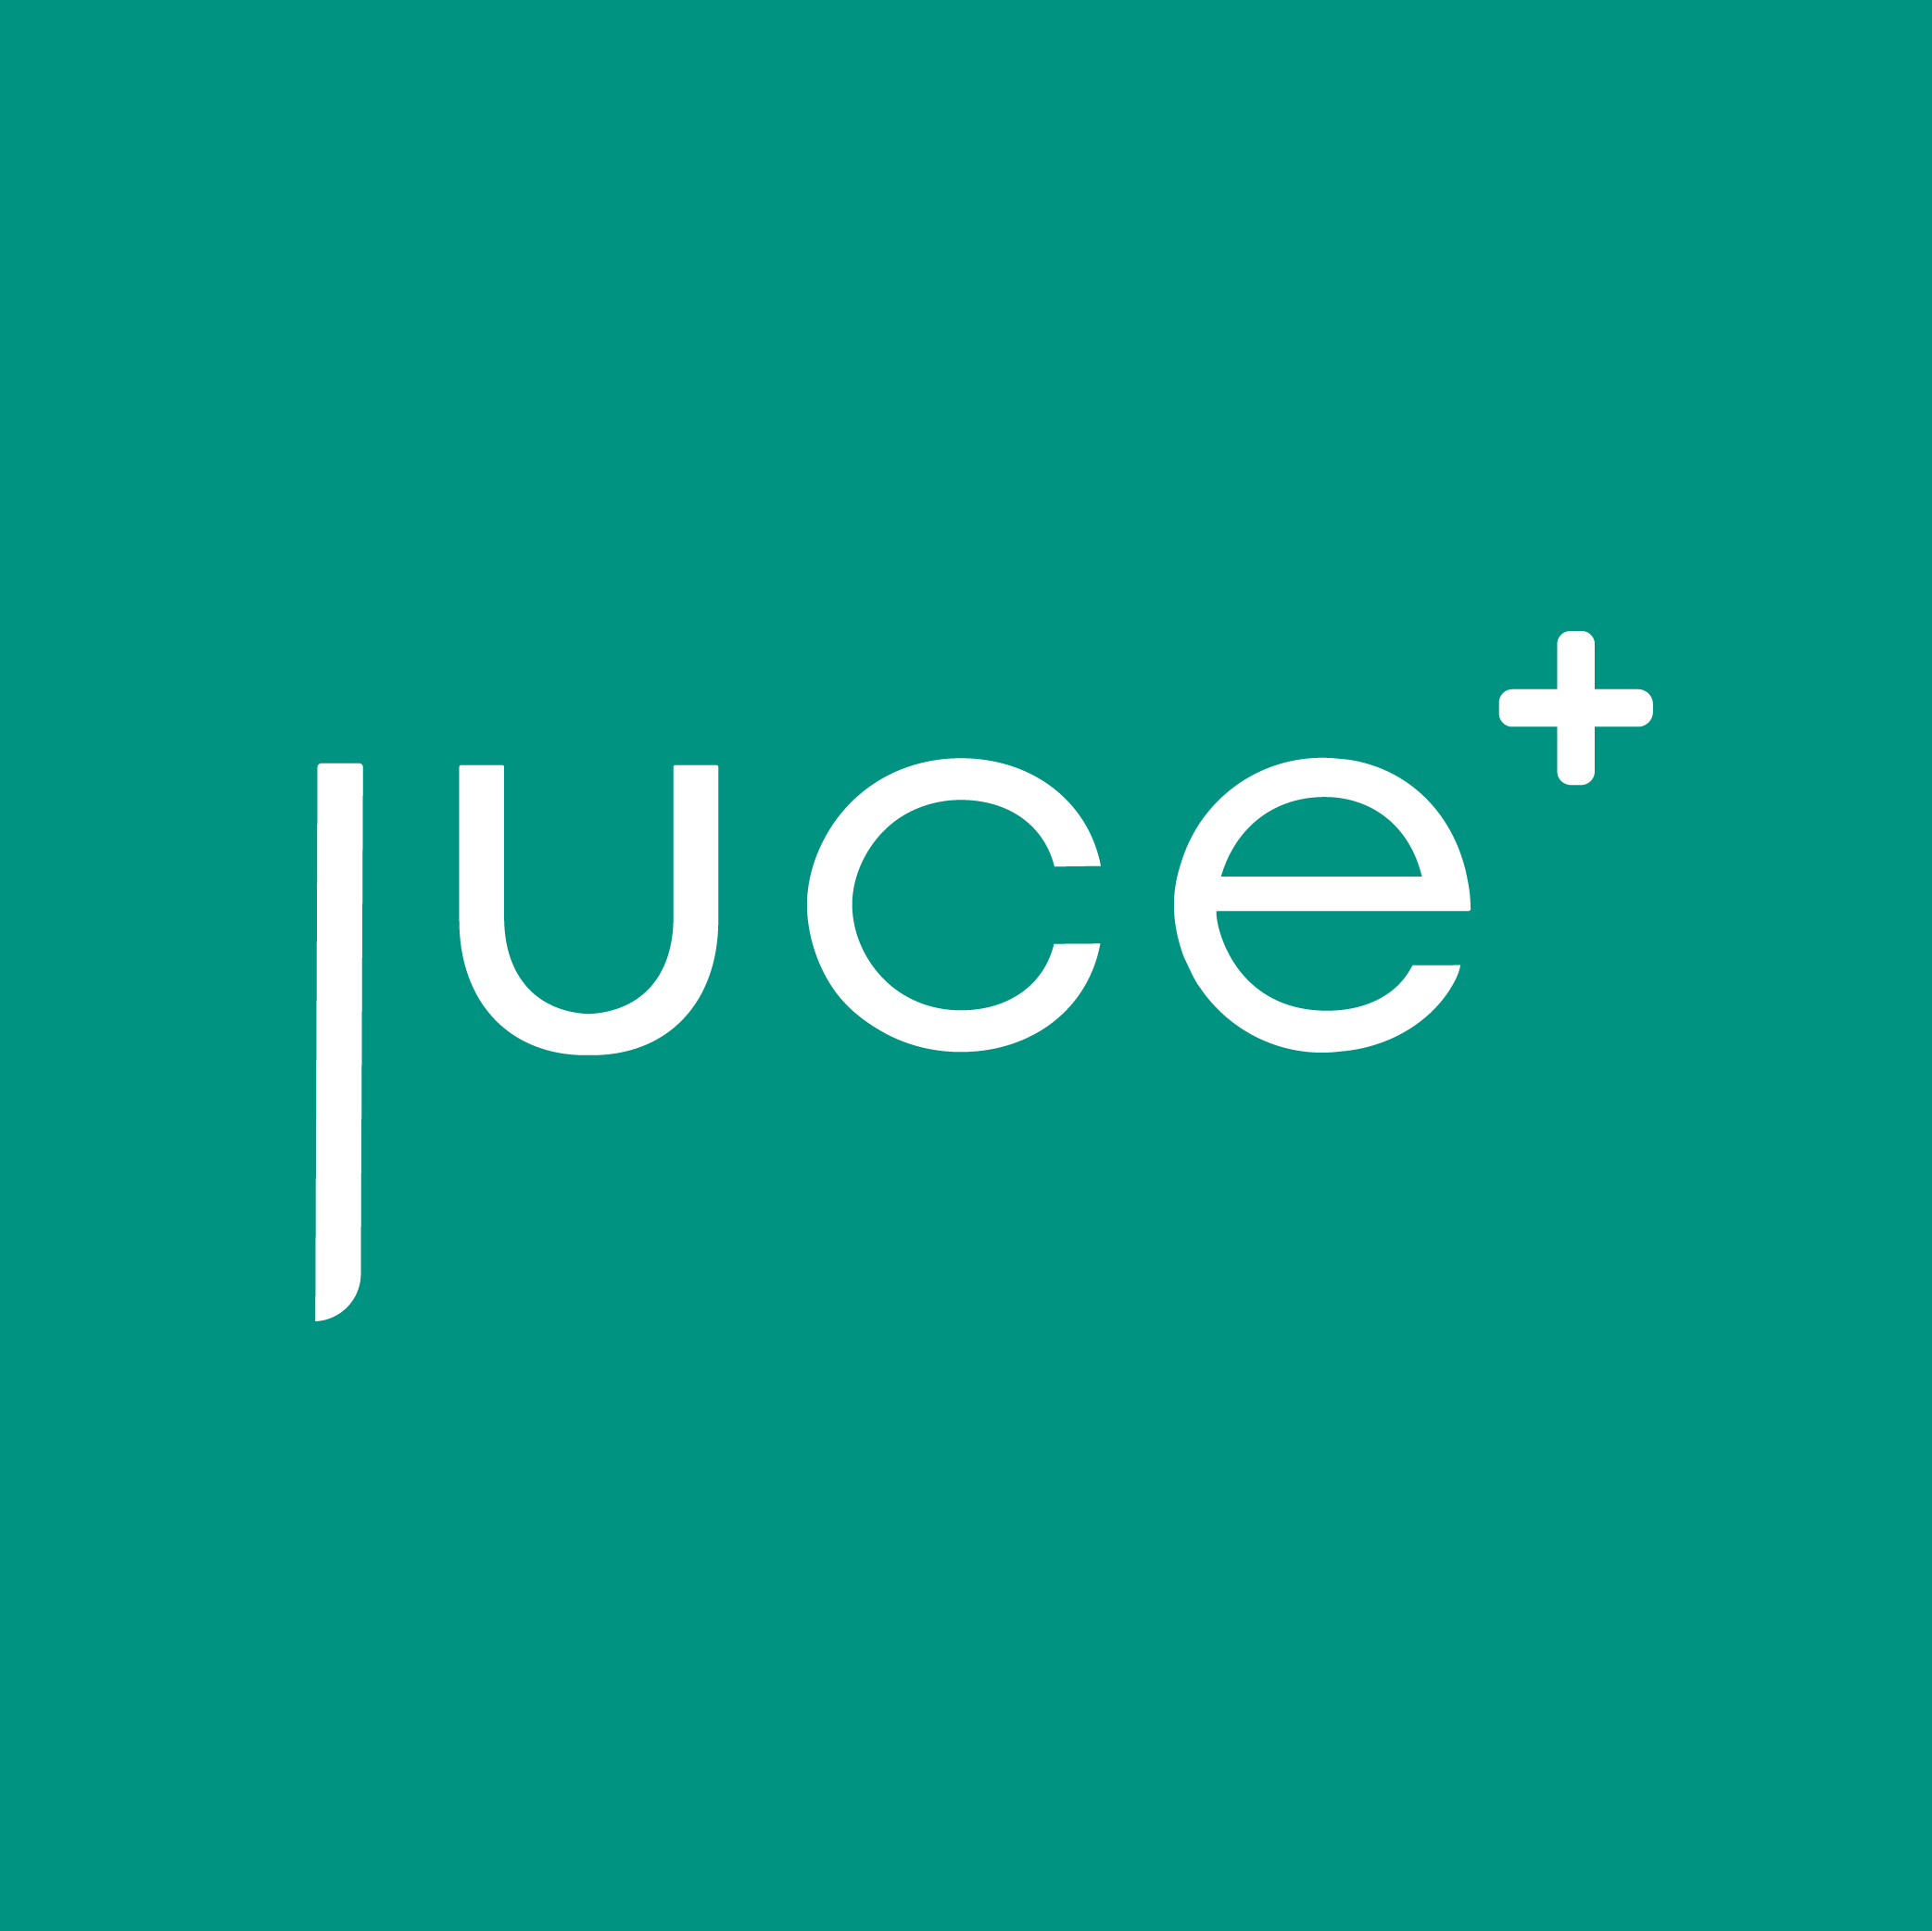 JUCE icon